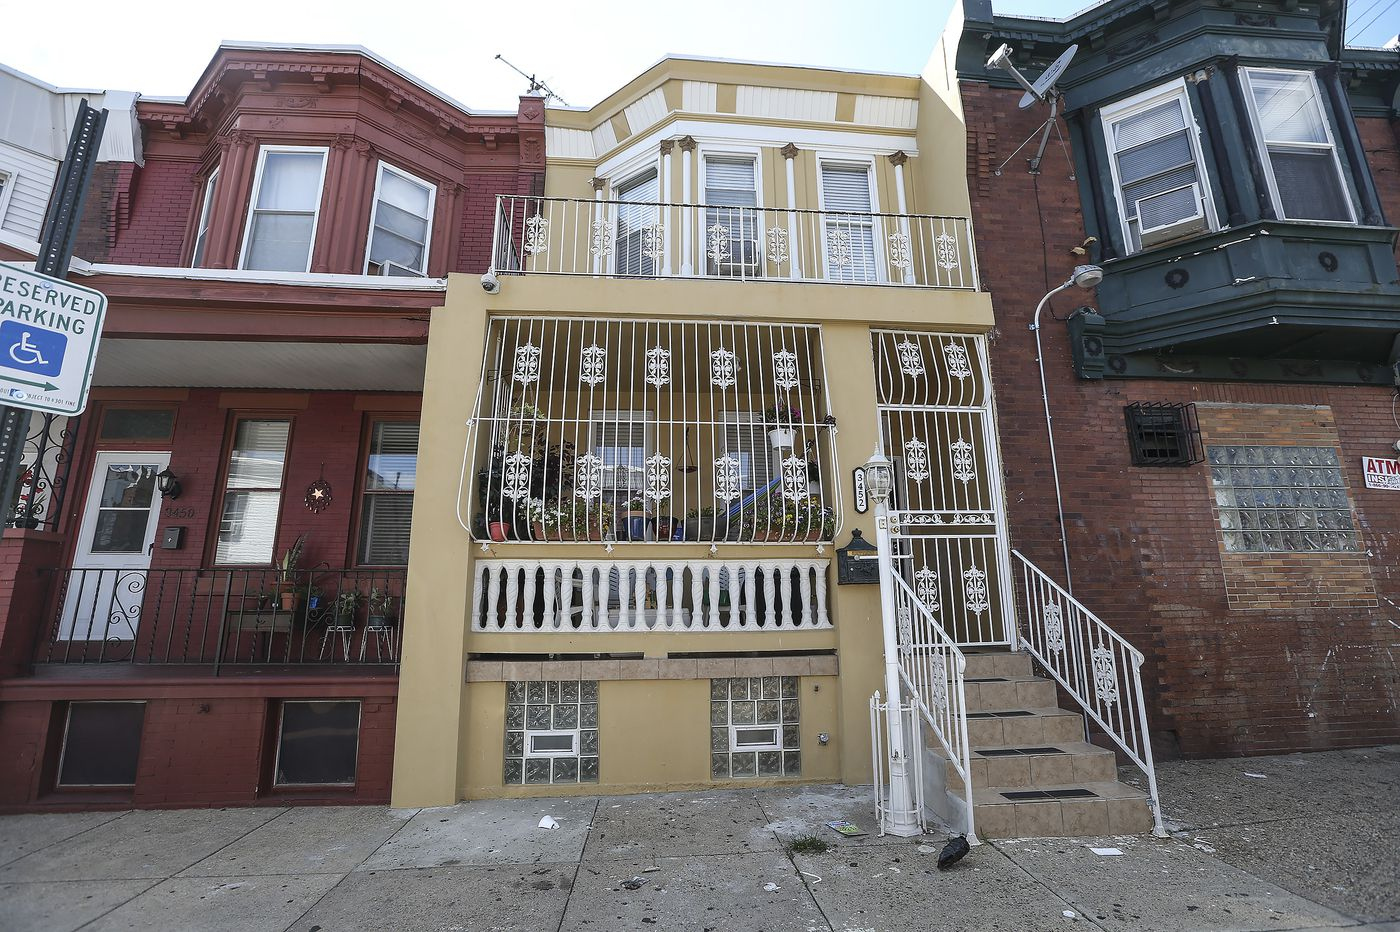 Philadelphia Latinos connect with Caribbean roots through ornate porch gates